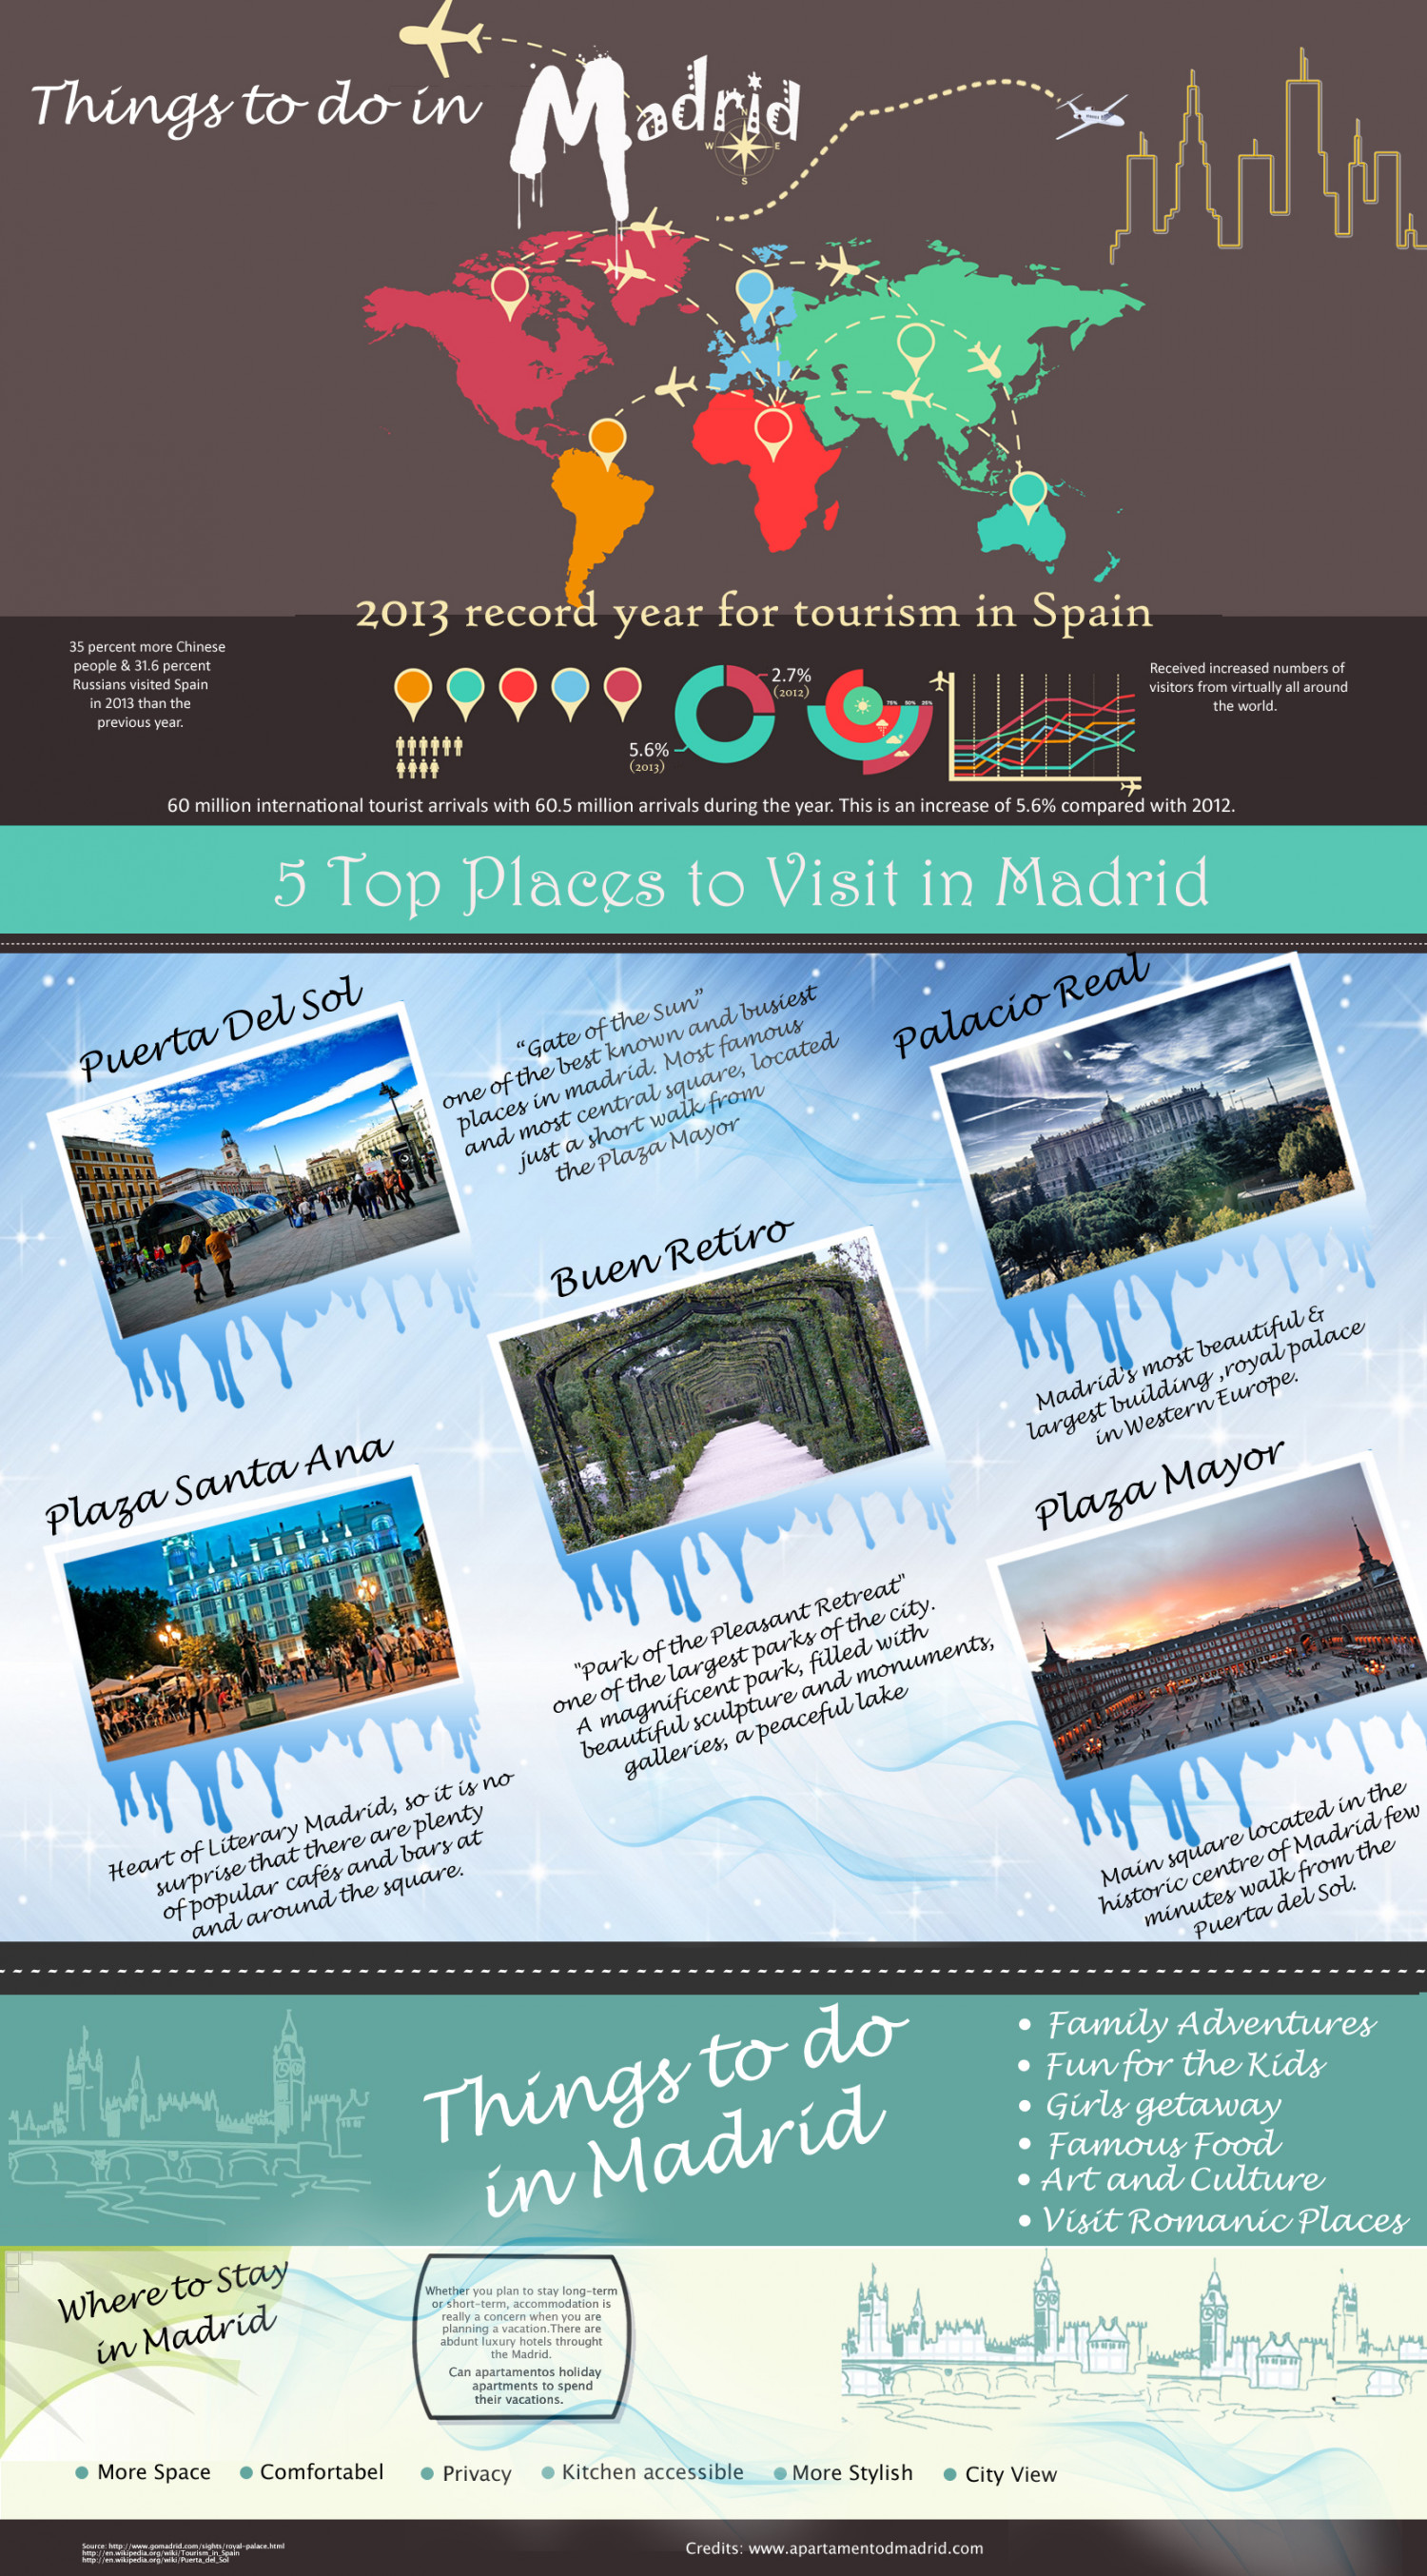 Things to do in Madrid Infographic